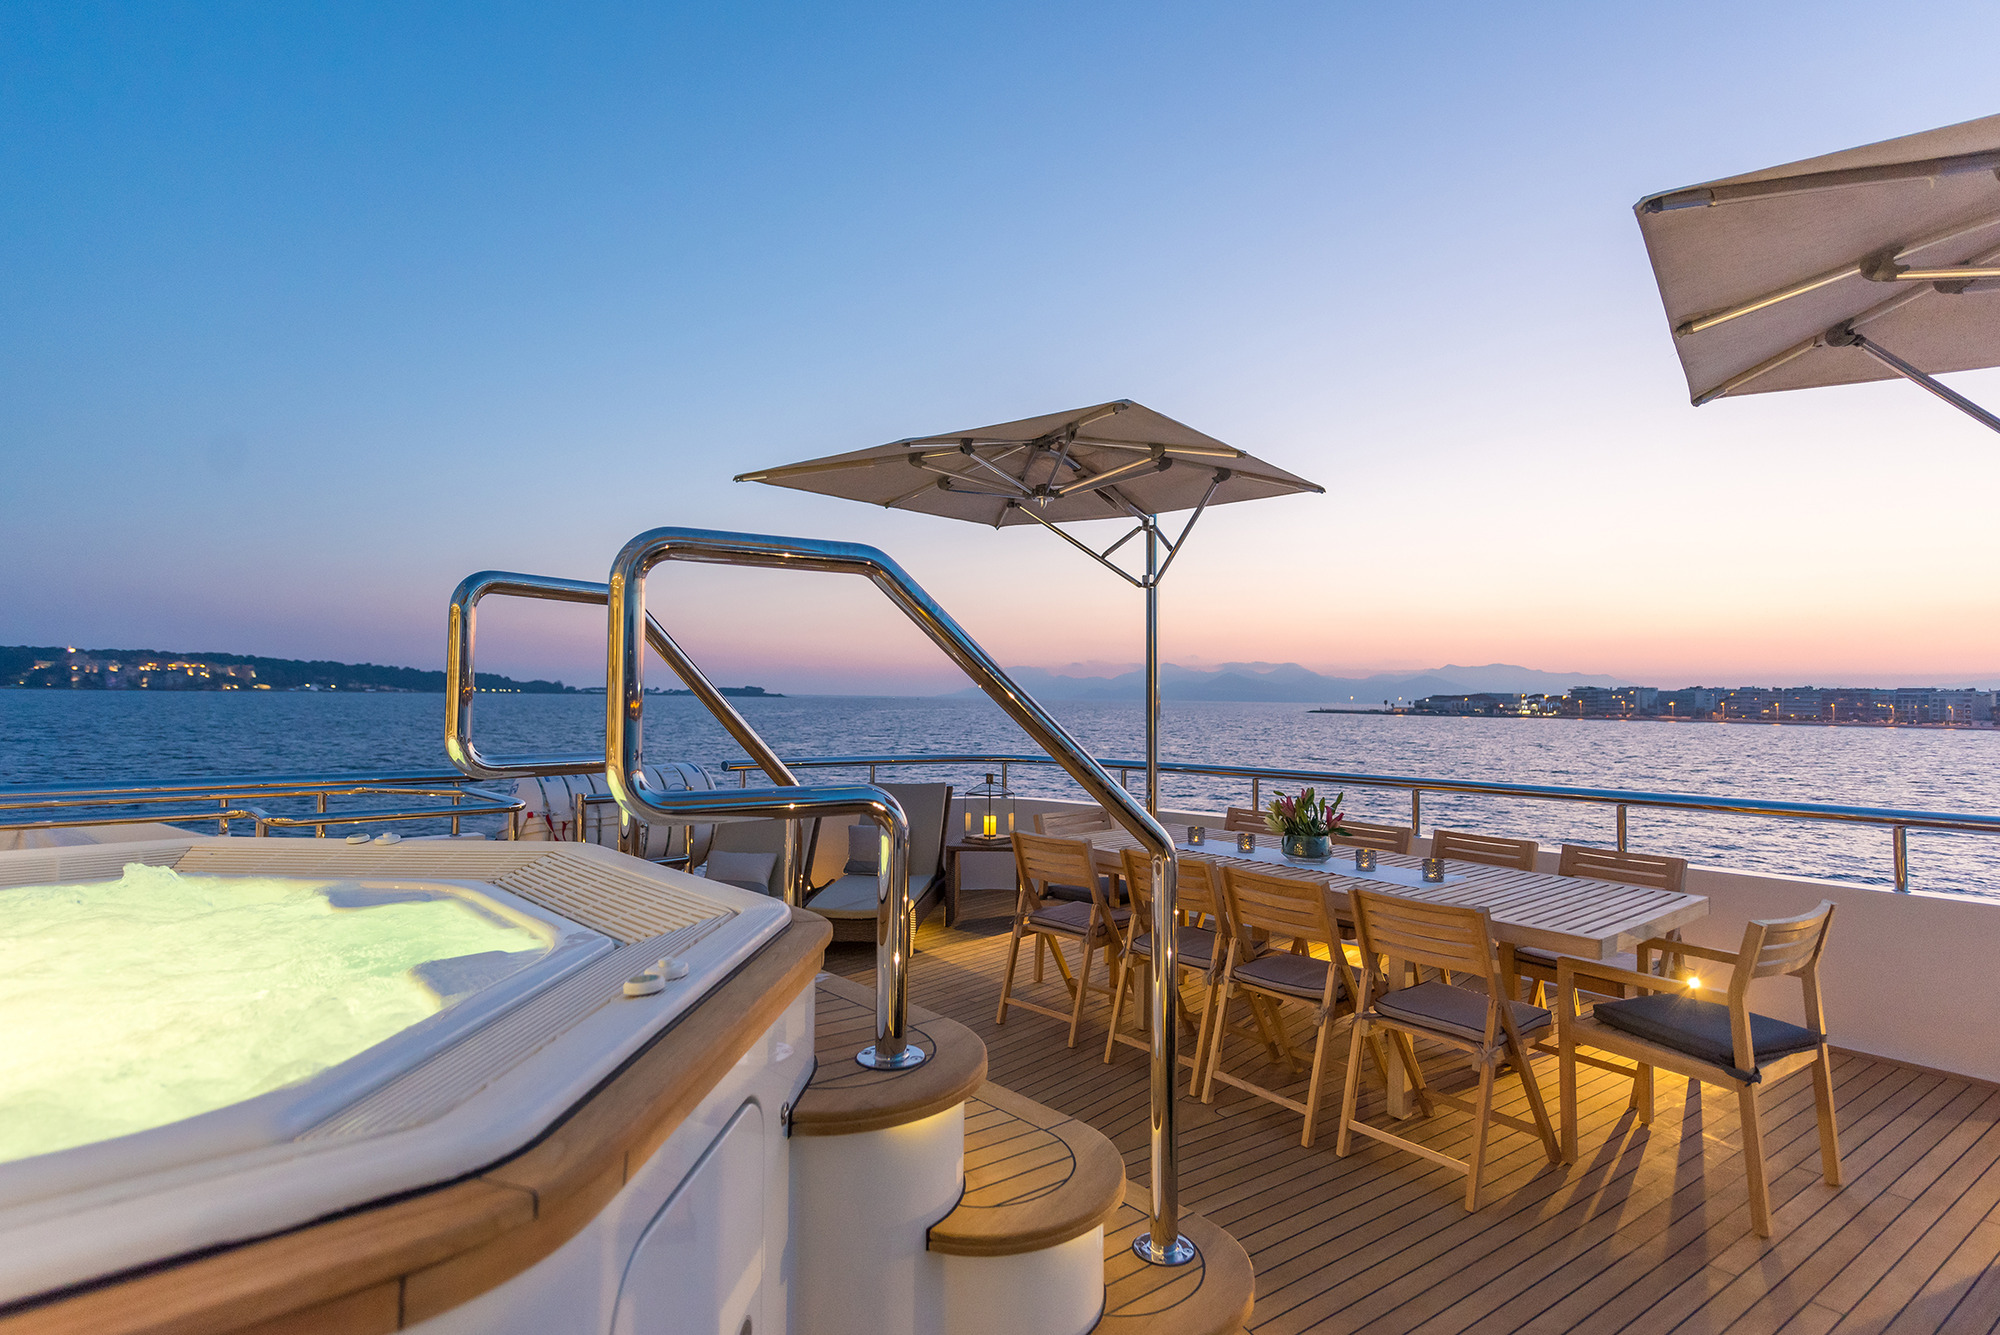 Jacuzzi And Al Fresco Dining At Night